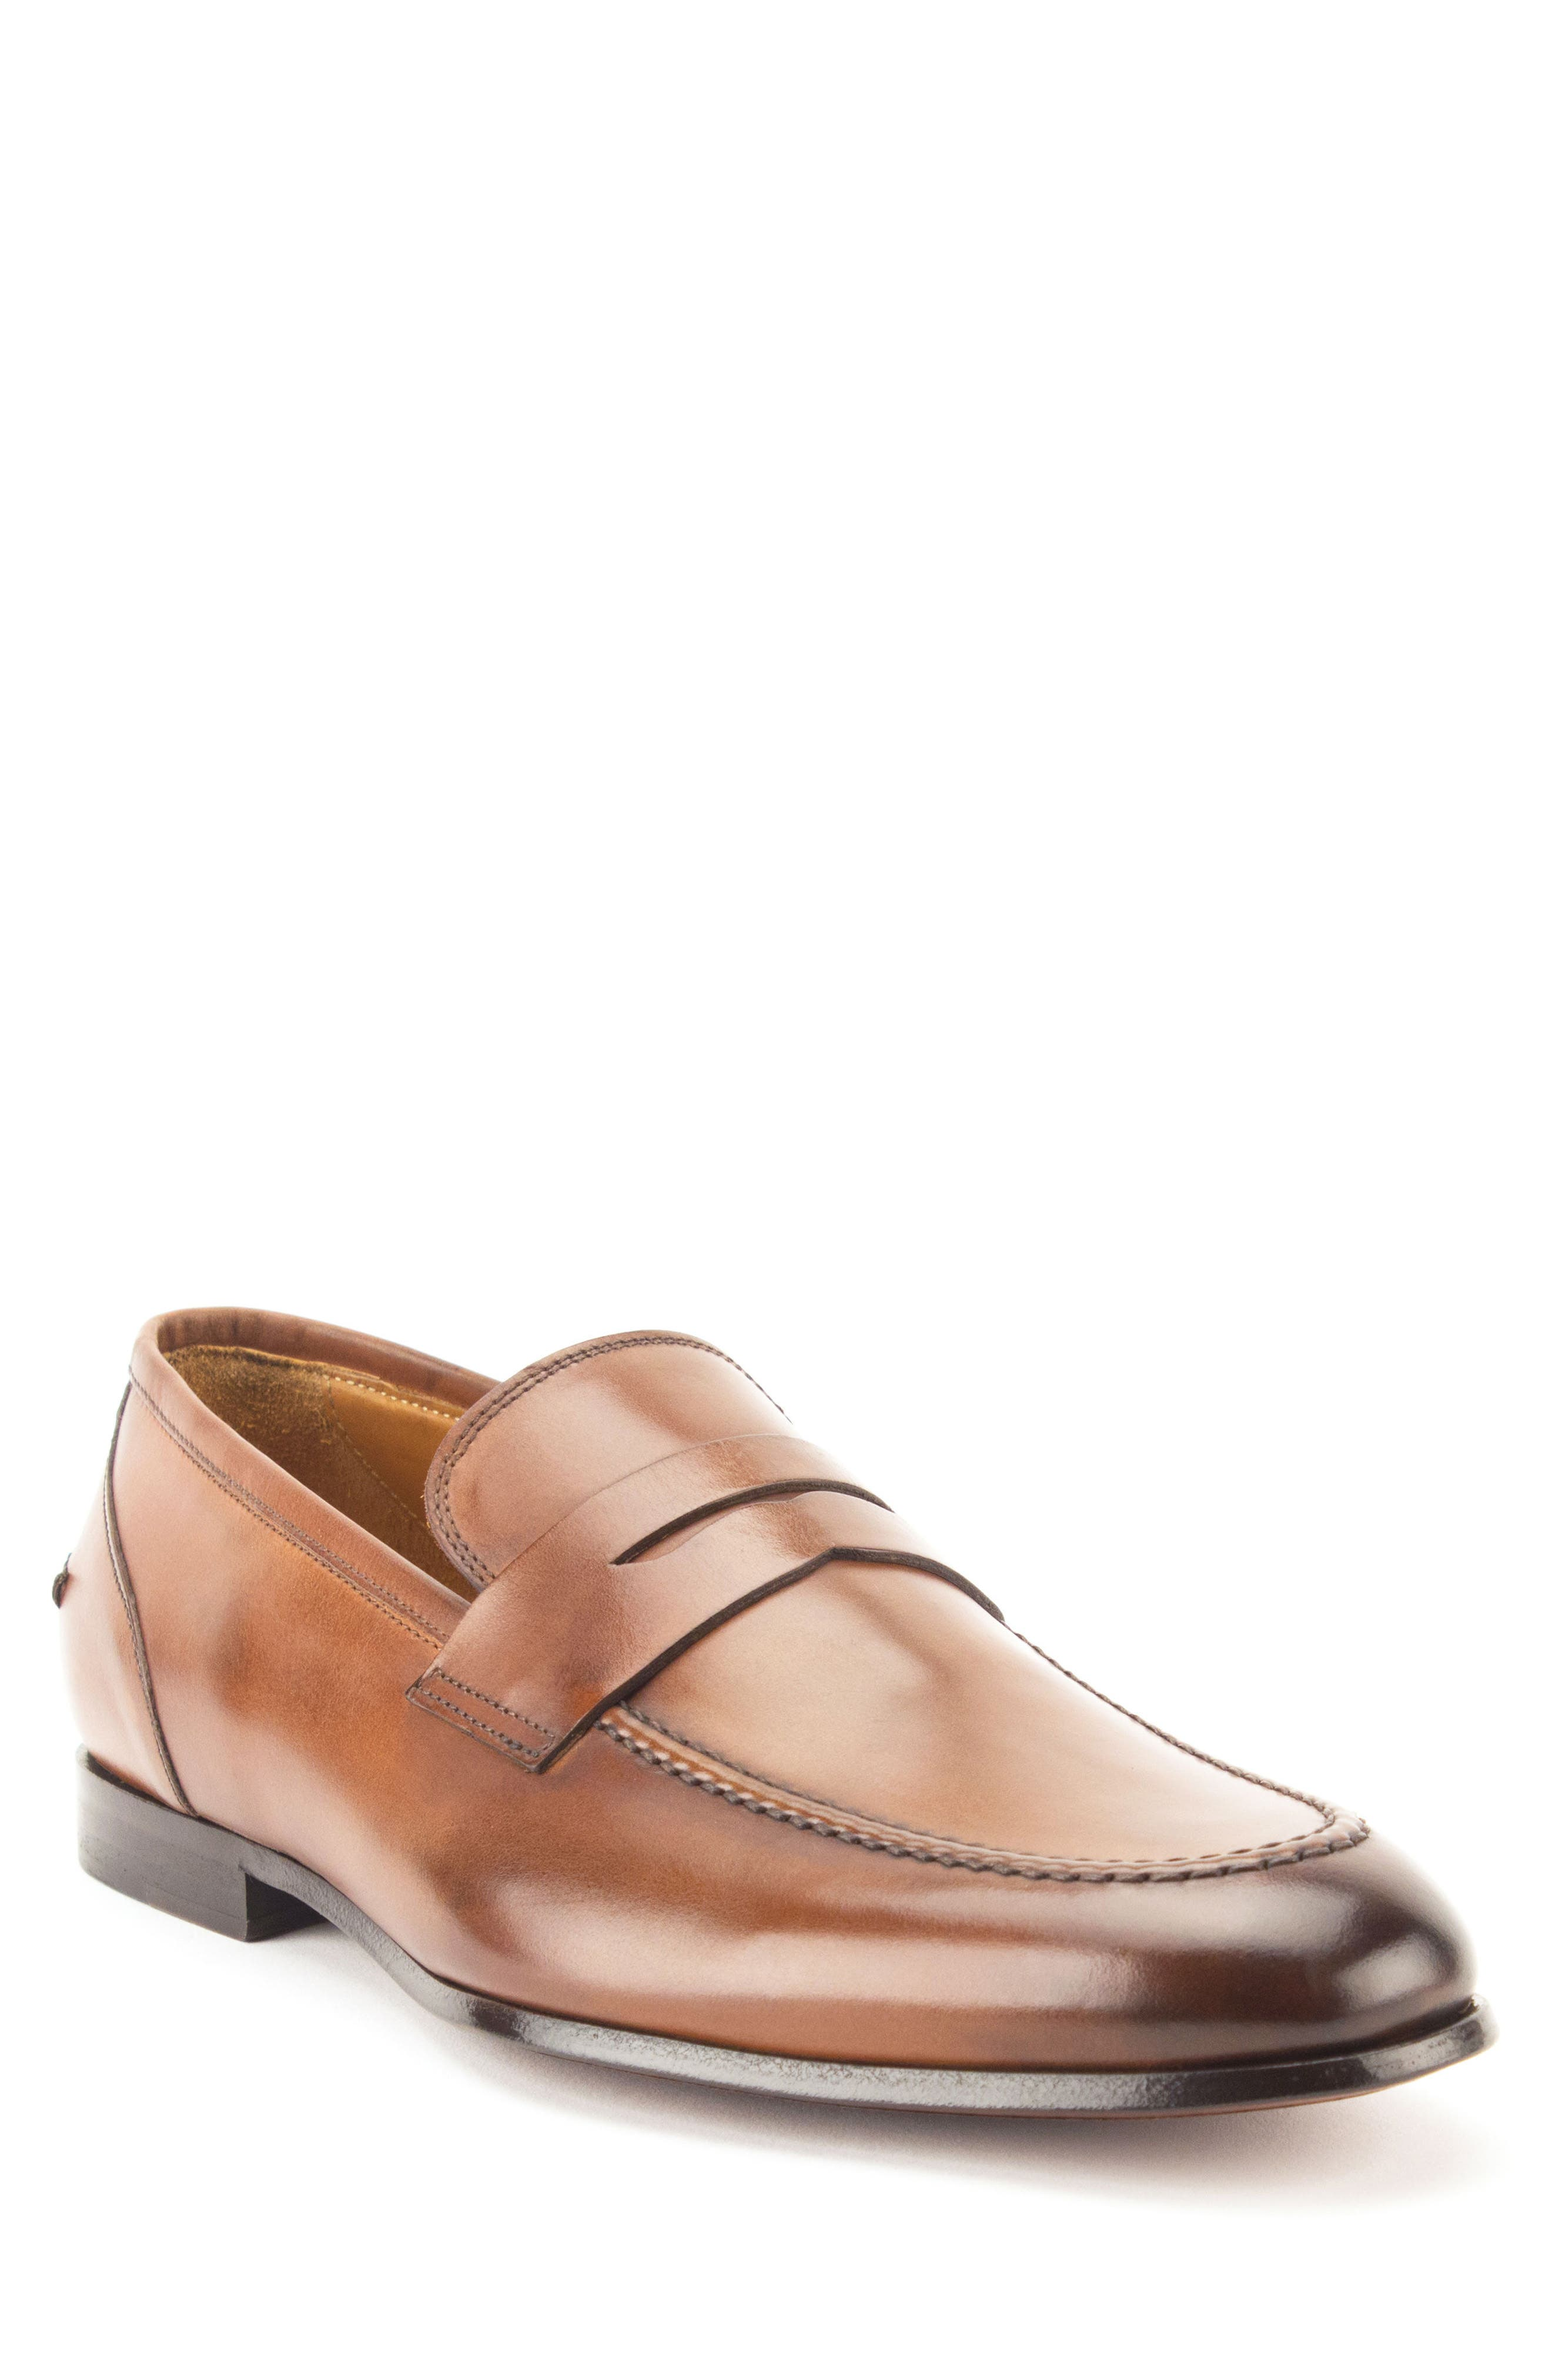 Coleman Apron Toe Penny Loafer,                             Main thumbnail 1, color,                             Tan Leather